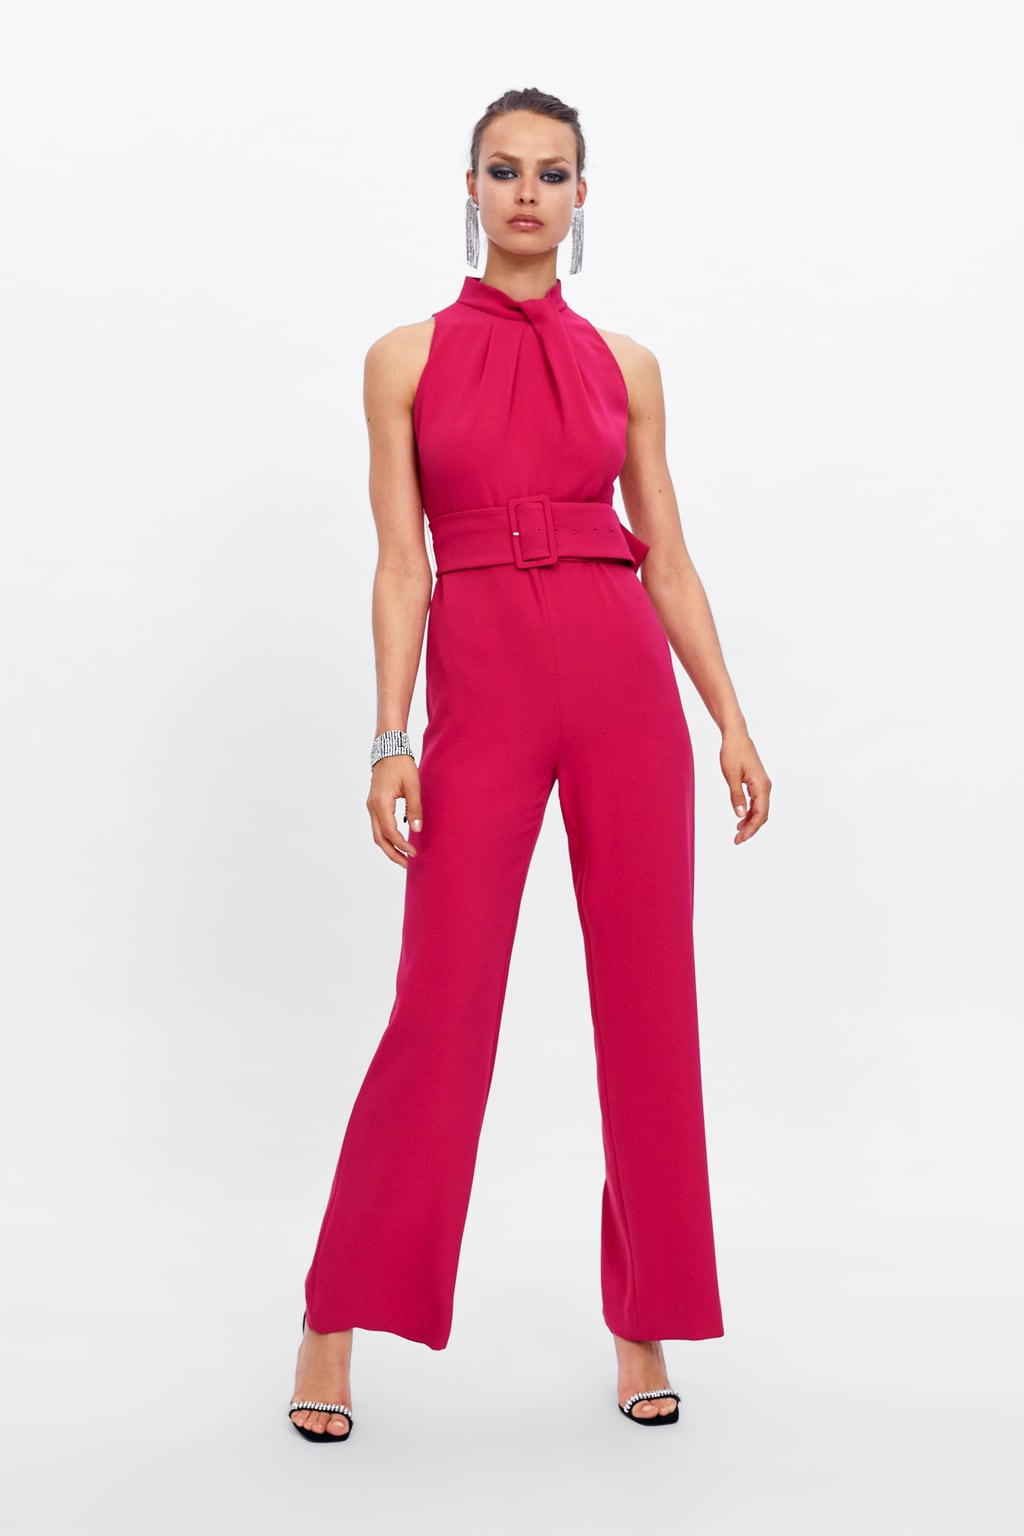 FUCHSIA BELTED JUMPSUIT - 69.99 GBP